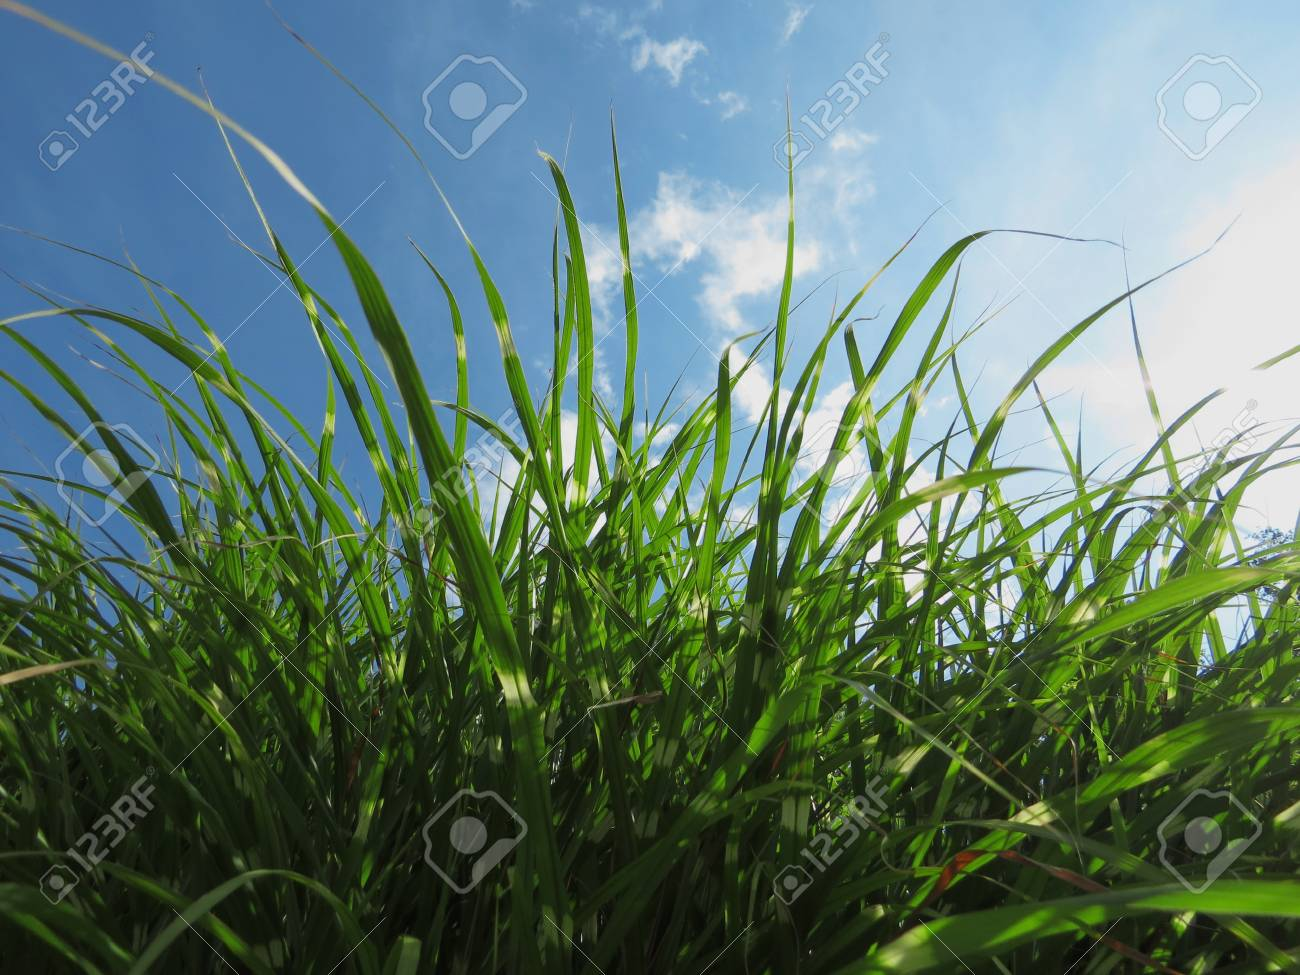 Grass  in front of the sky Stock Photo - 22177404